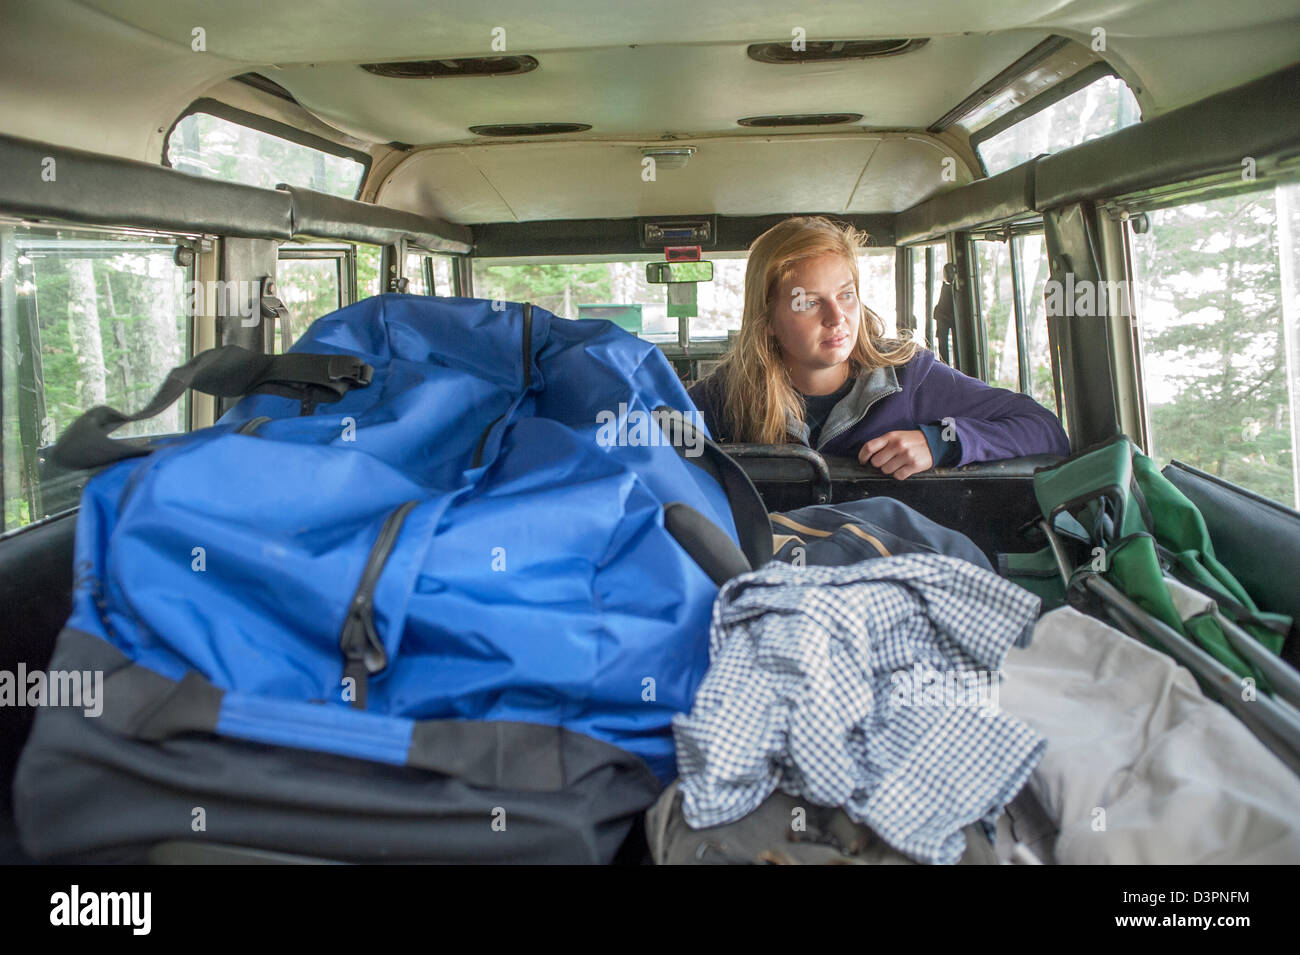 info for 533b3 83ce9 Young woman packing camping gear in classic SUV Acadia ...